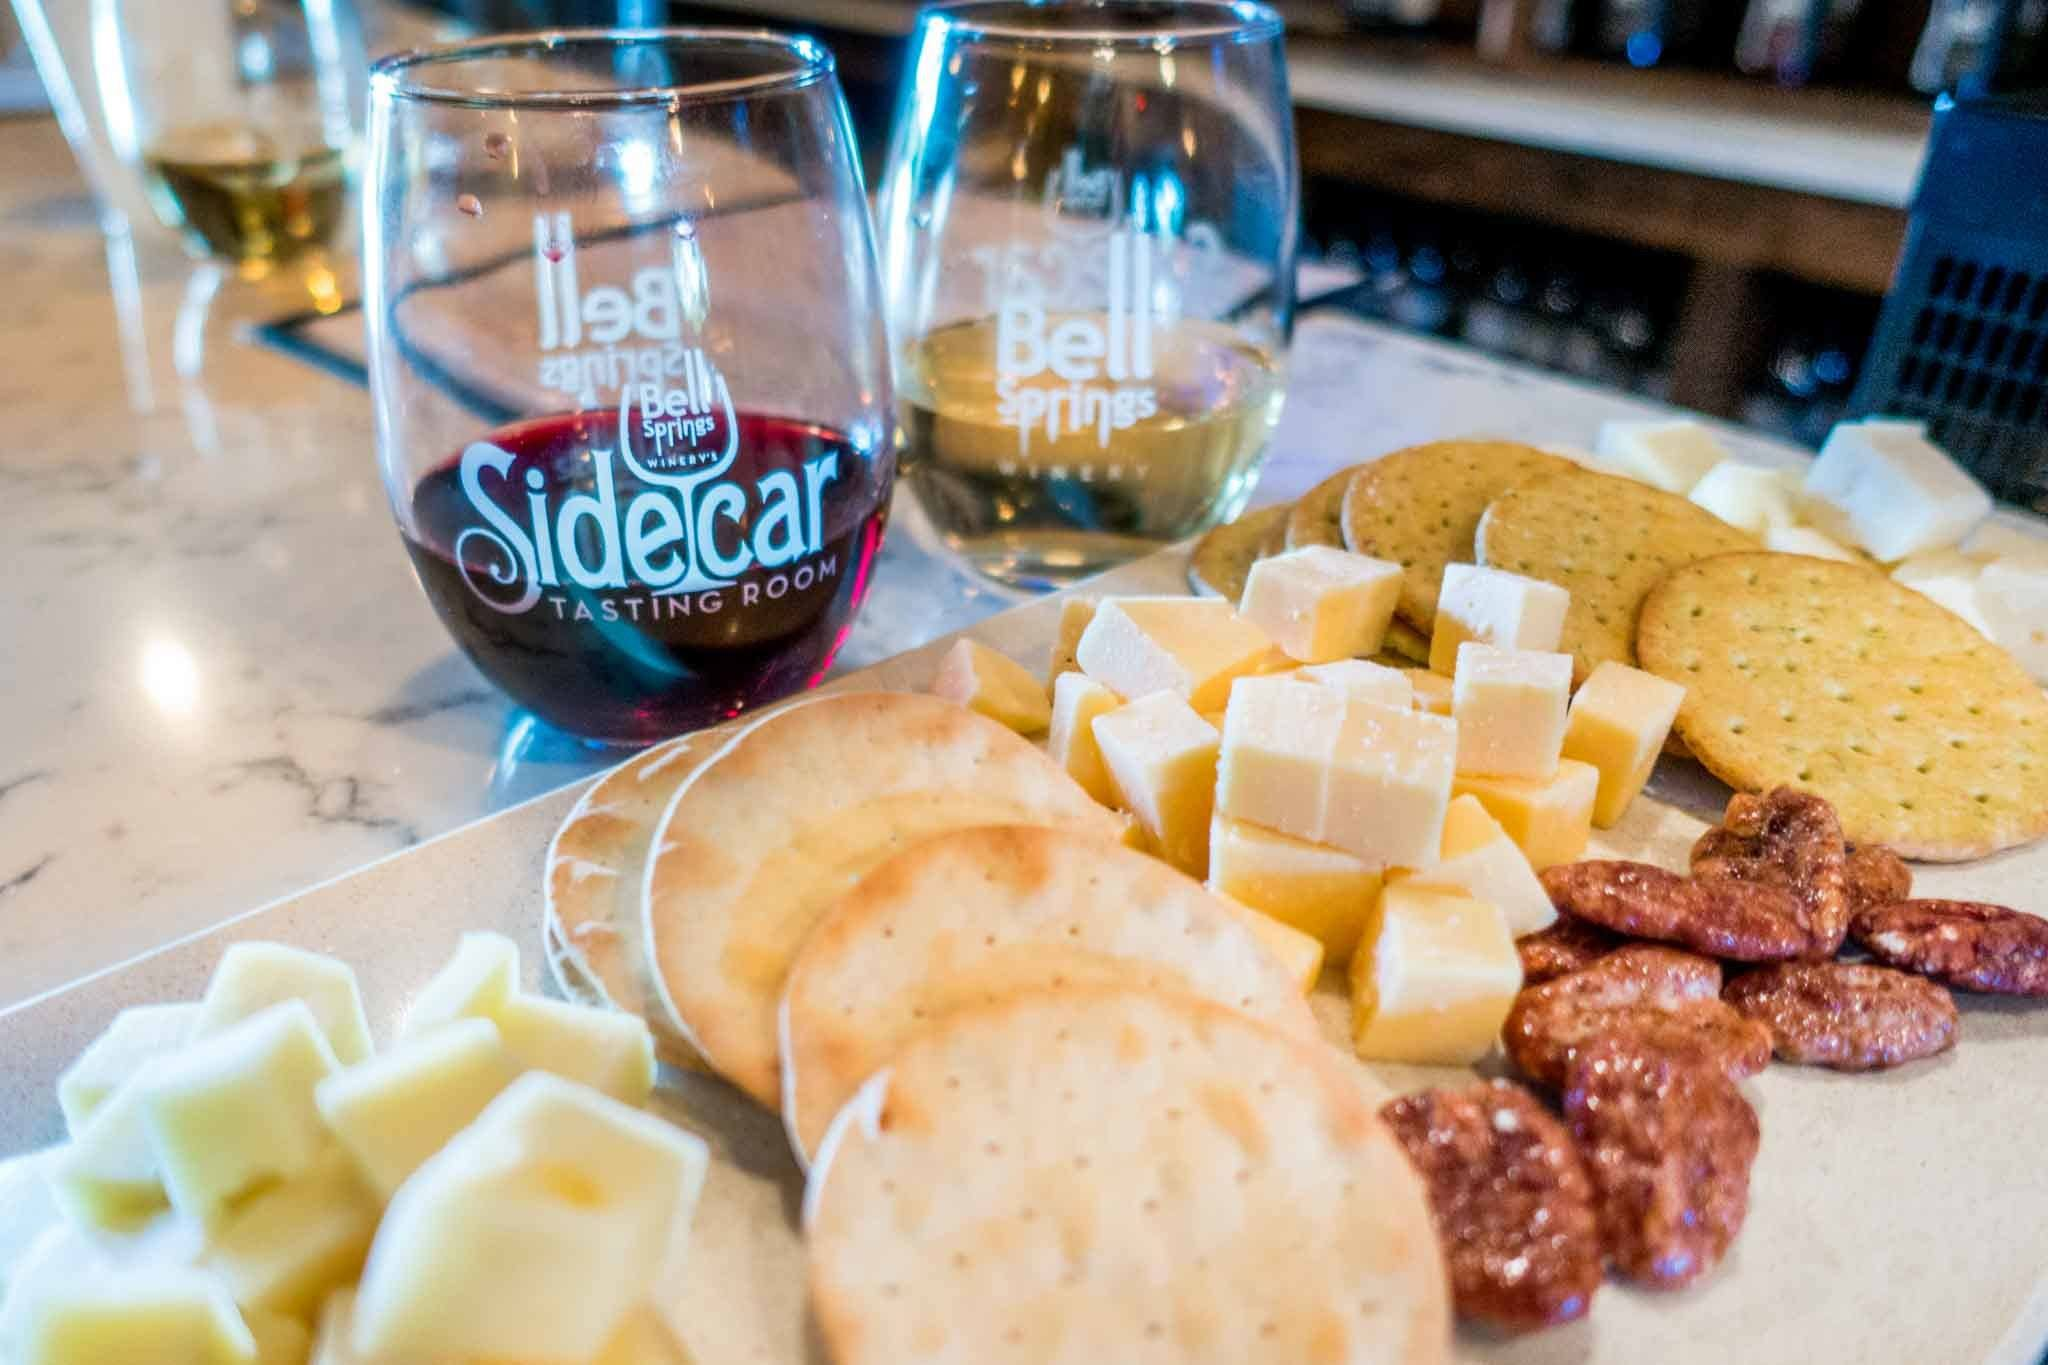 Wine glasses and snacks